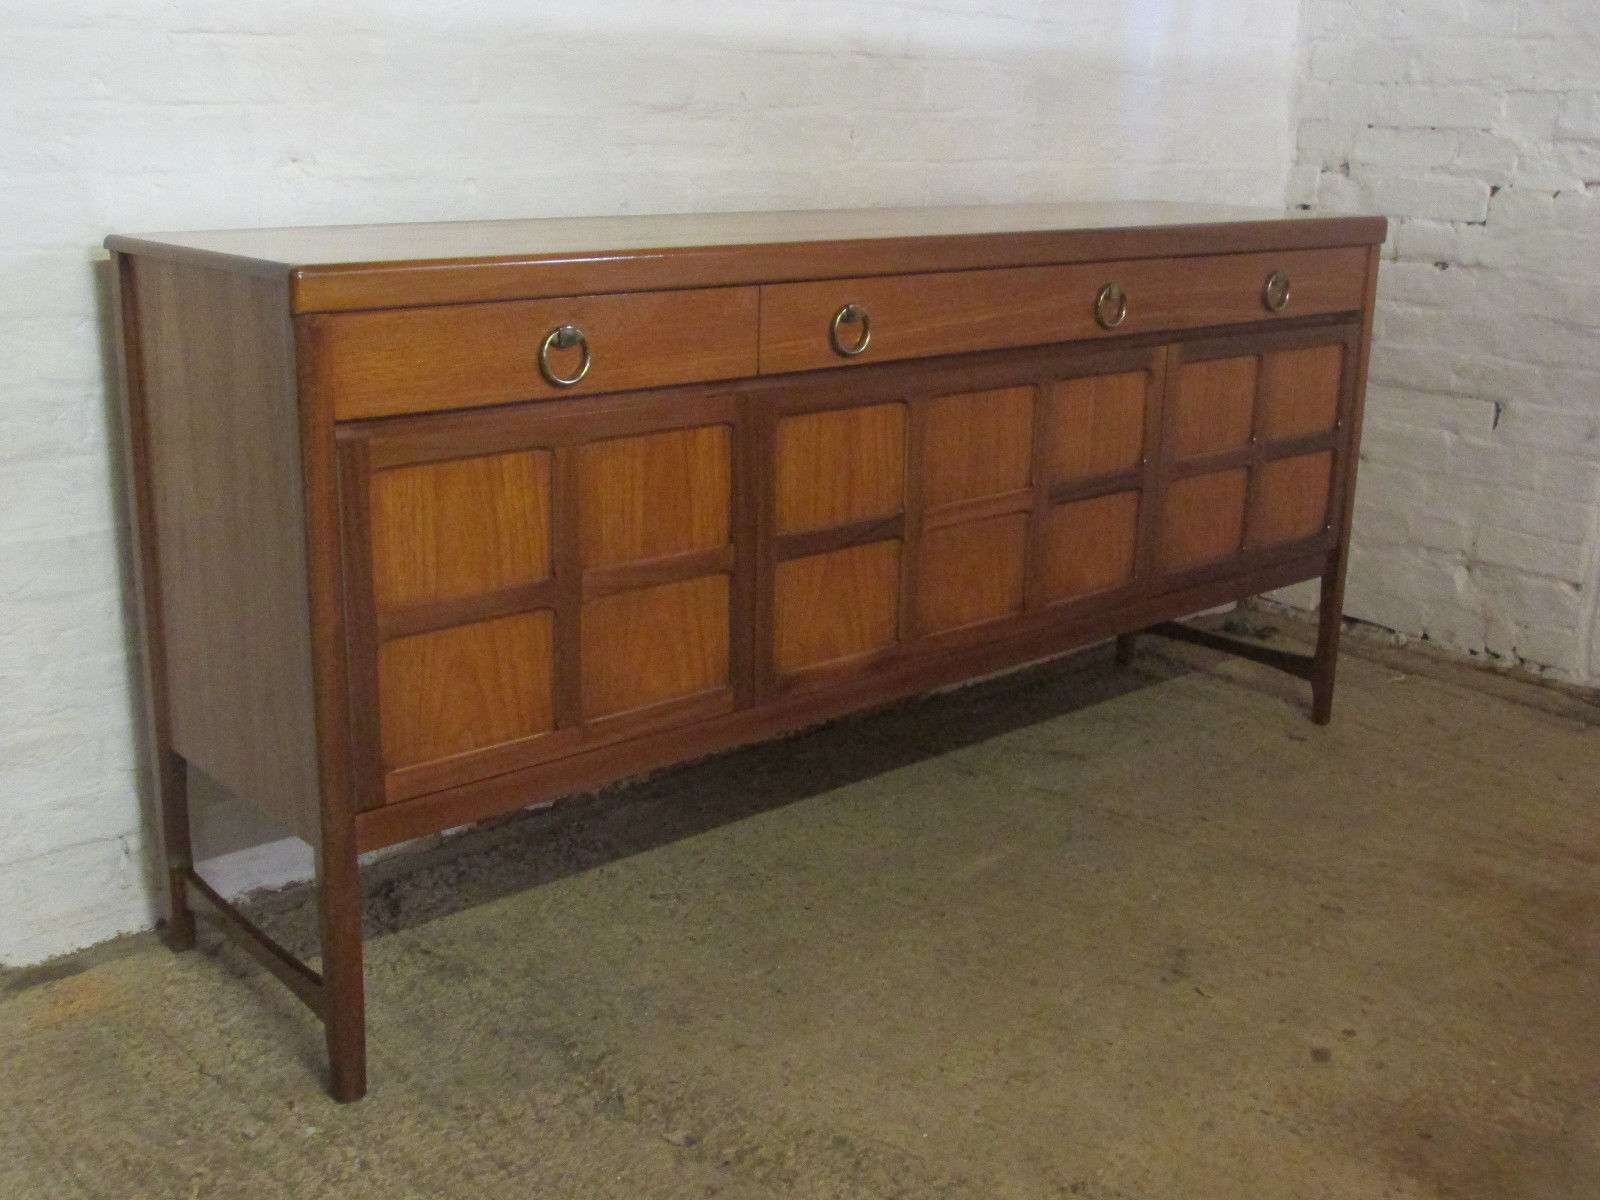 Retro 1960s/1970s Nathan Large Six Foot Teak Sideboard With In 6 Foot Sideboards (View 18 of 20)